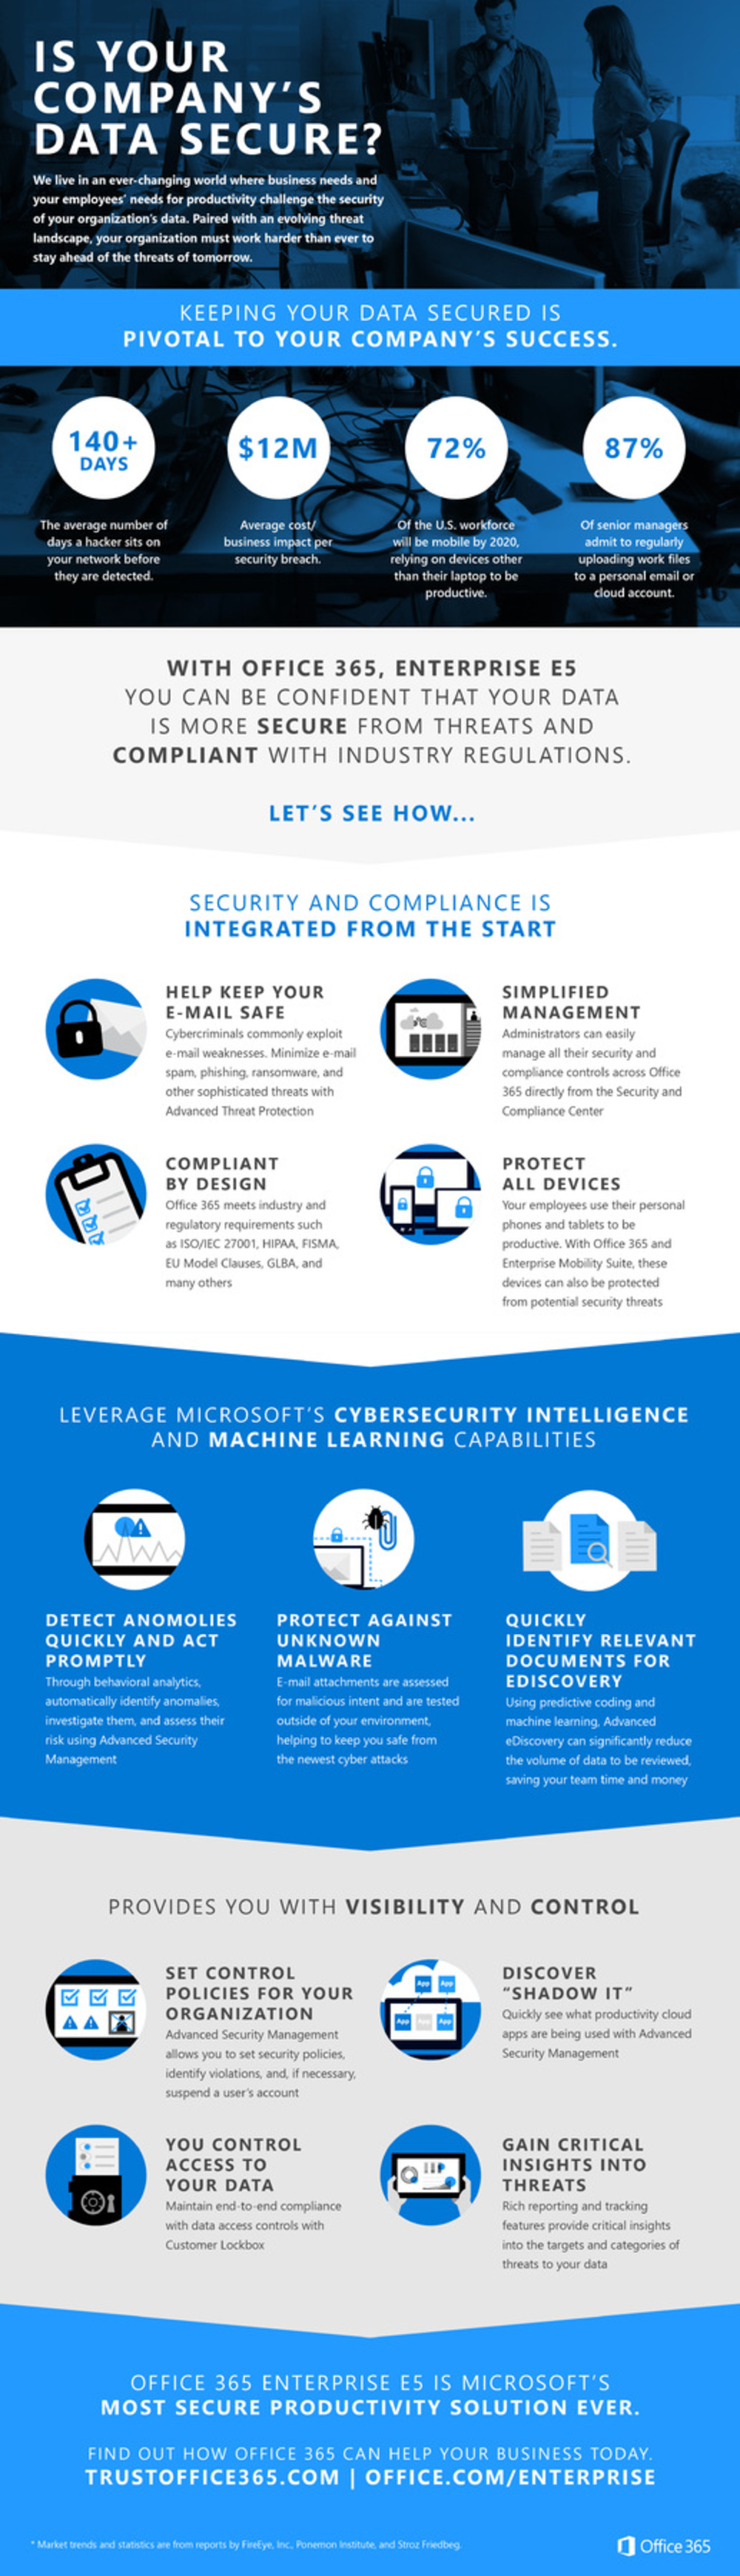 Stacy Reilly Design - Security Infographic